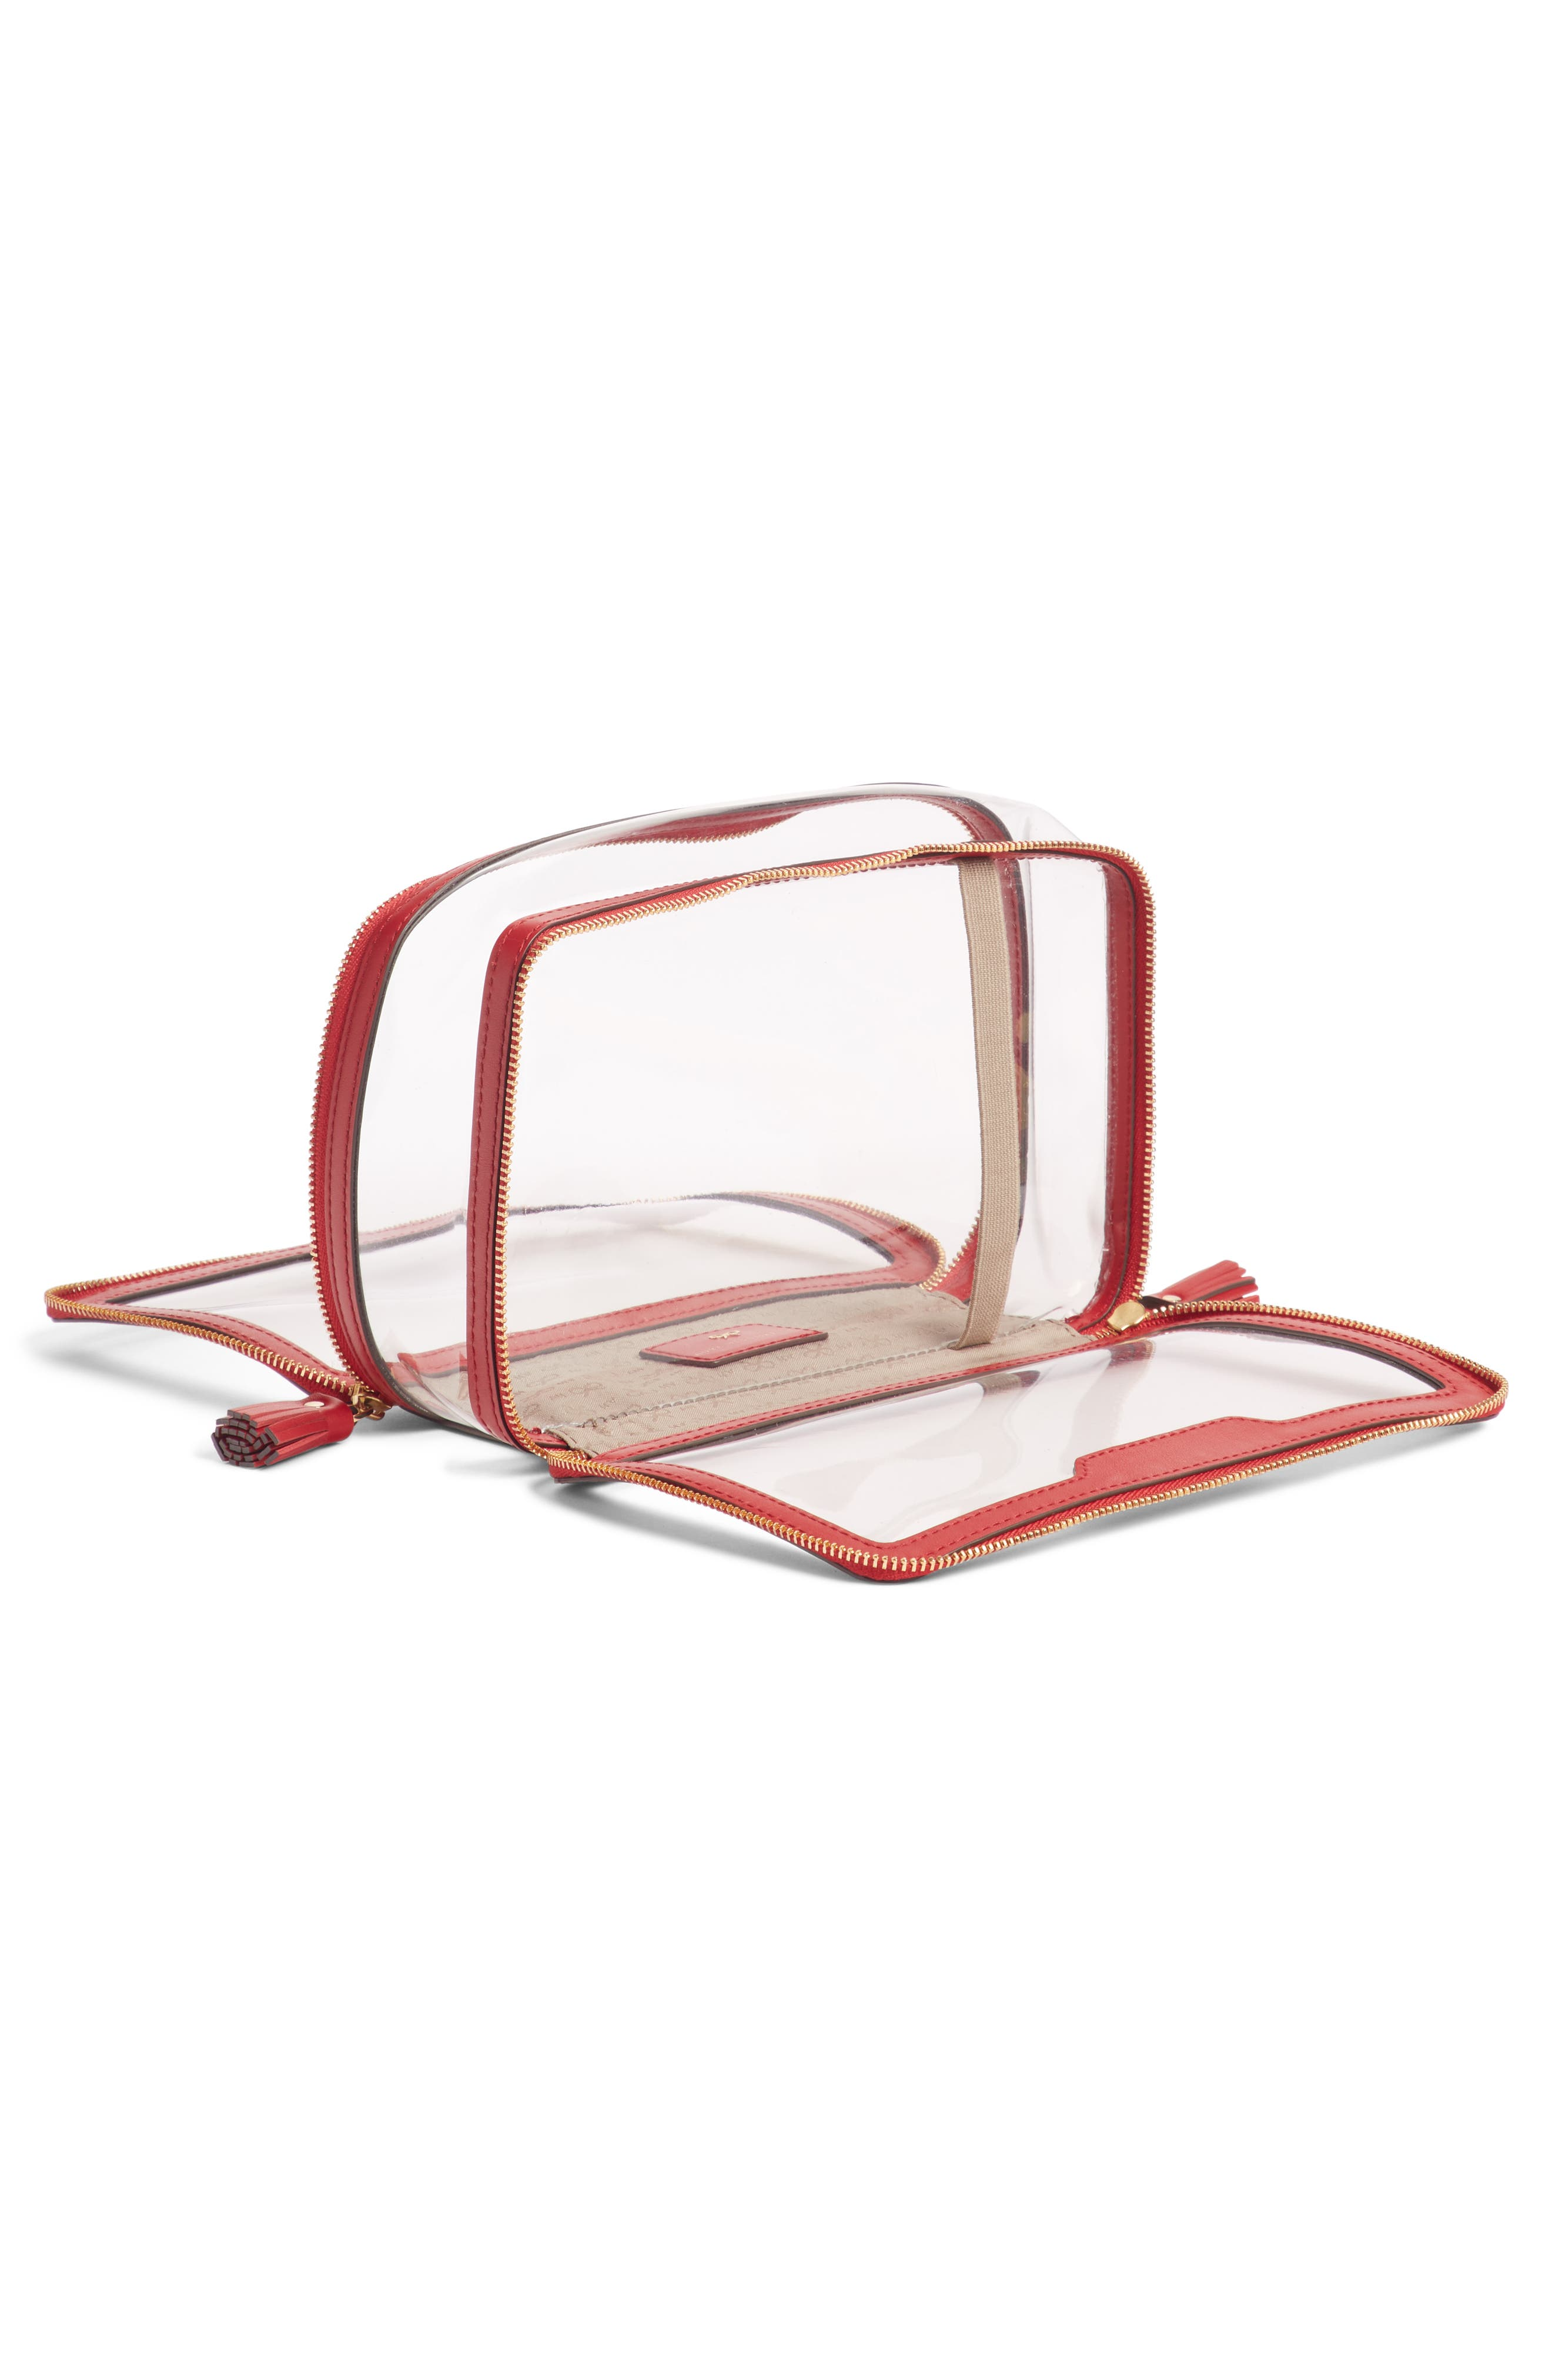 Inflight Clear Cosmetics Case,                             Alternate thumbnail 5, color,                             600